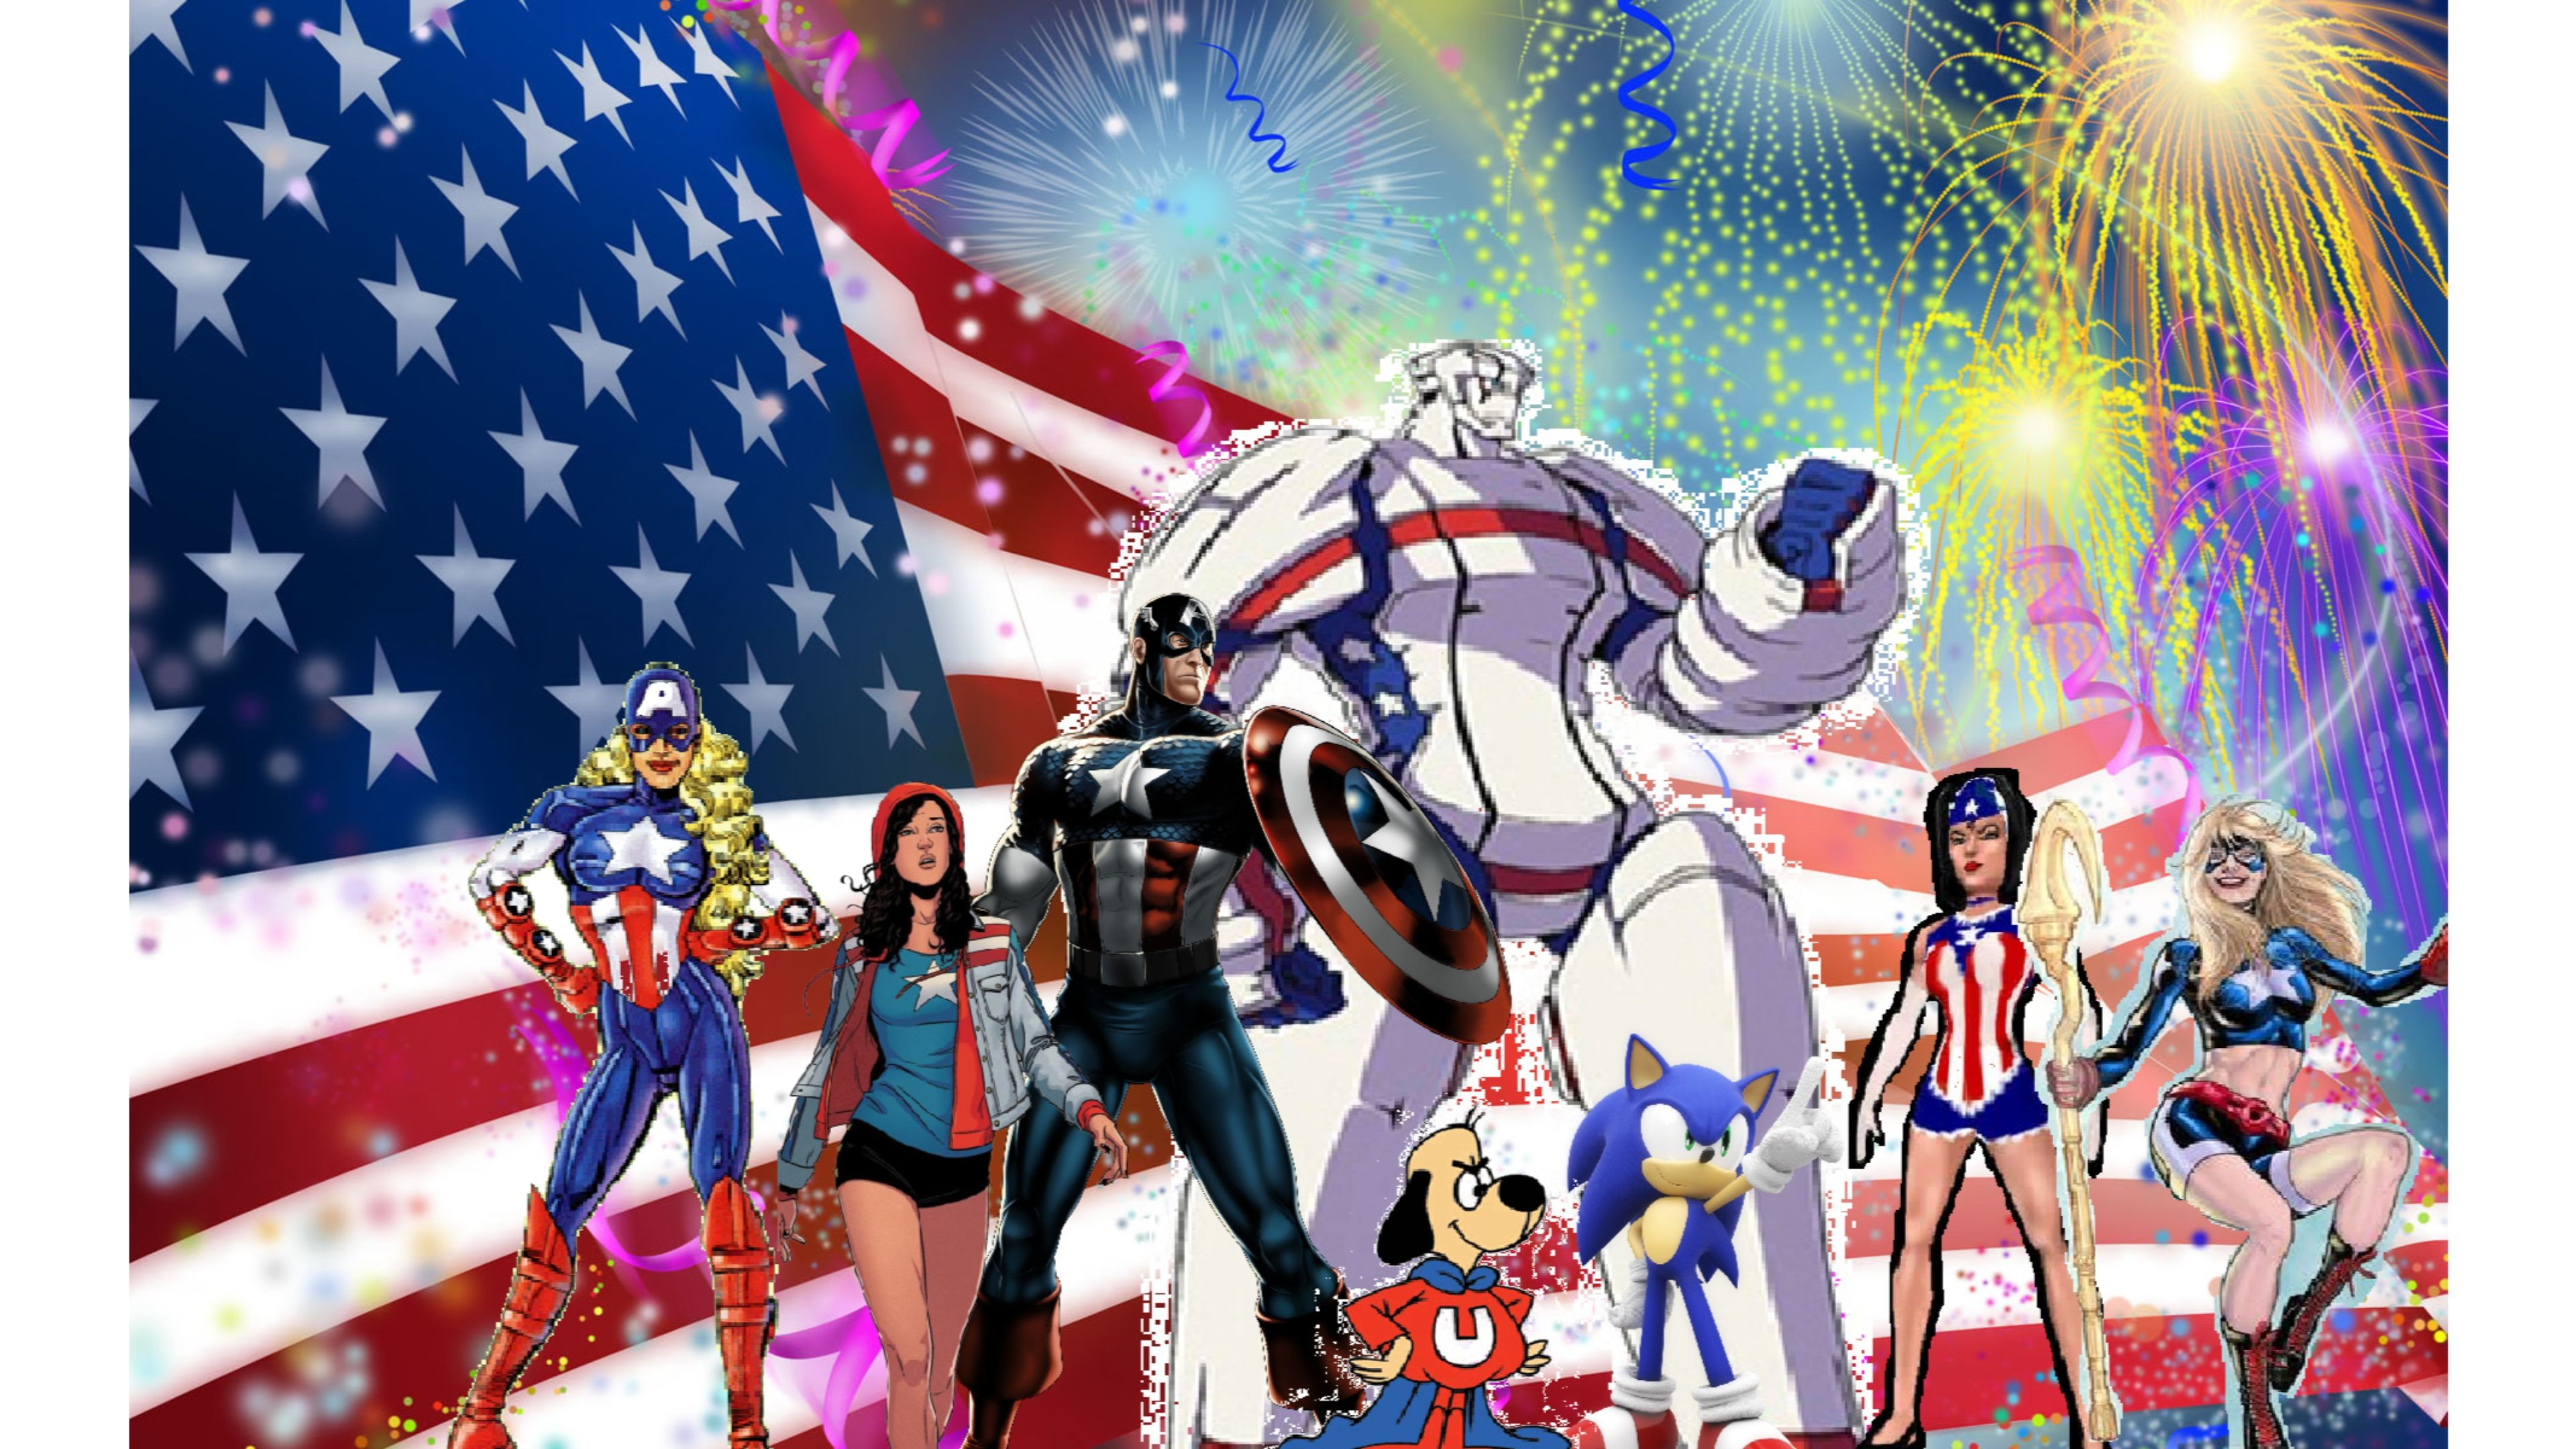 3840x2160 cartoons happy 4th of july 4k wallpaper